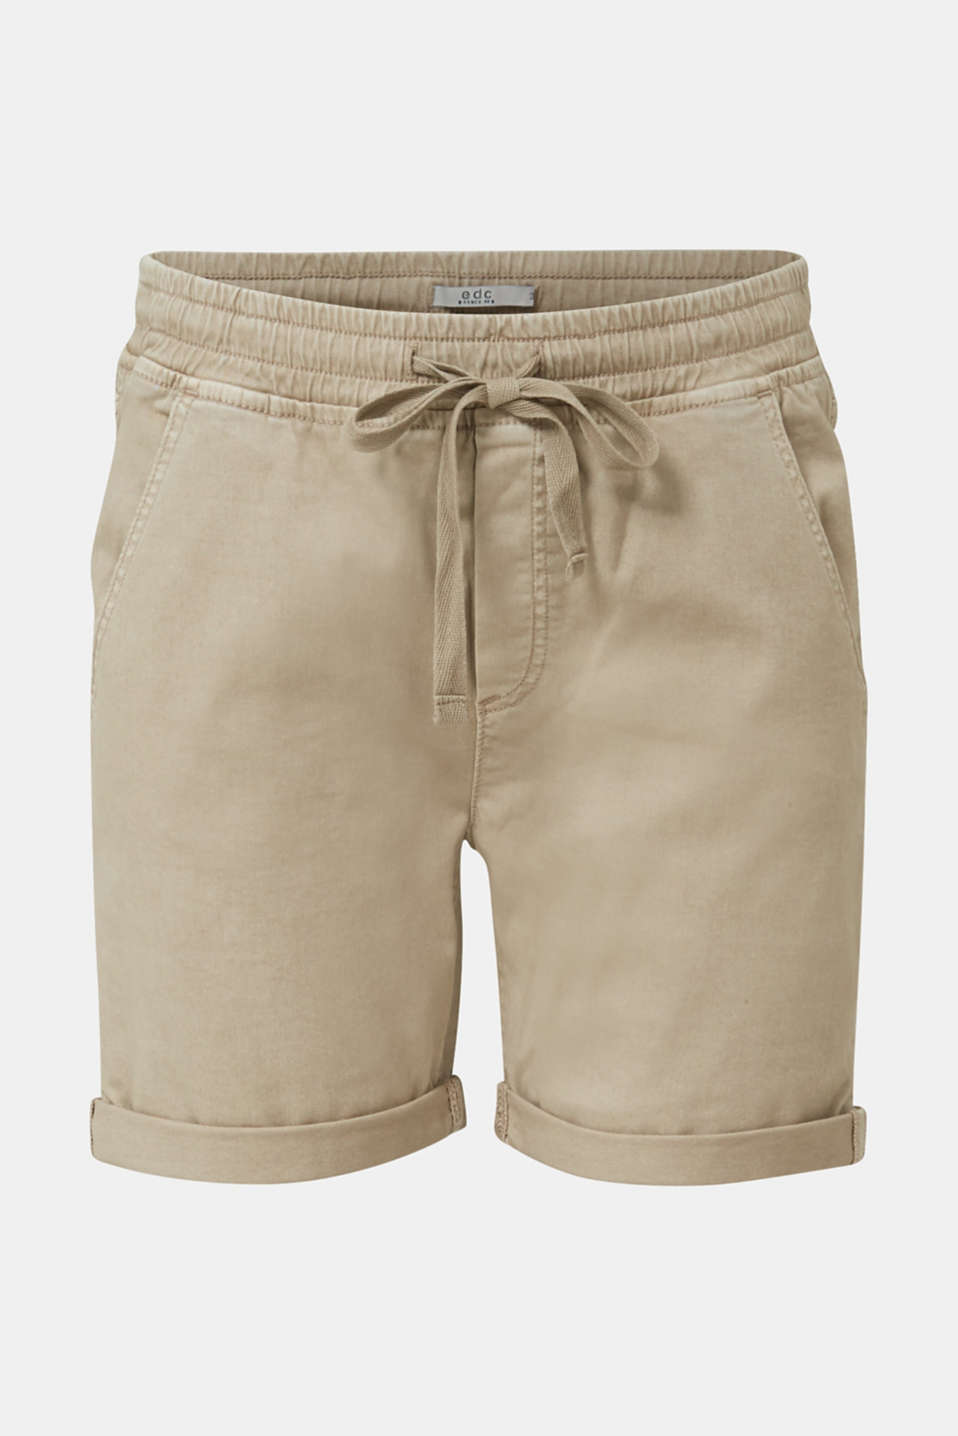 Shorts with an elasticated waistband, KHAKI BEIGE, detail image number 5